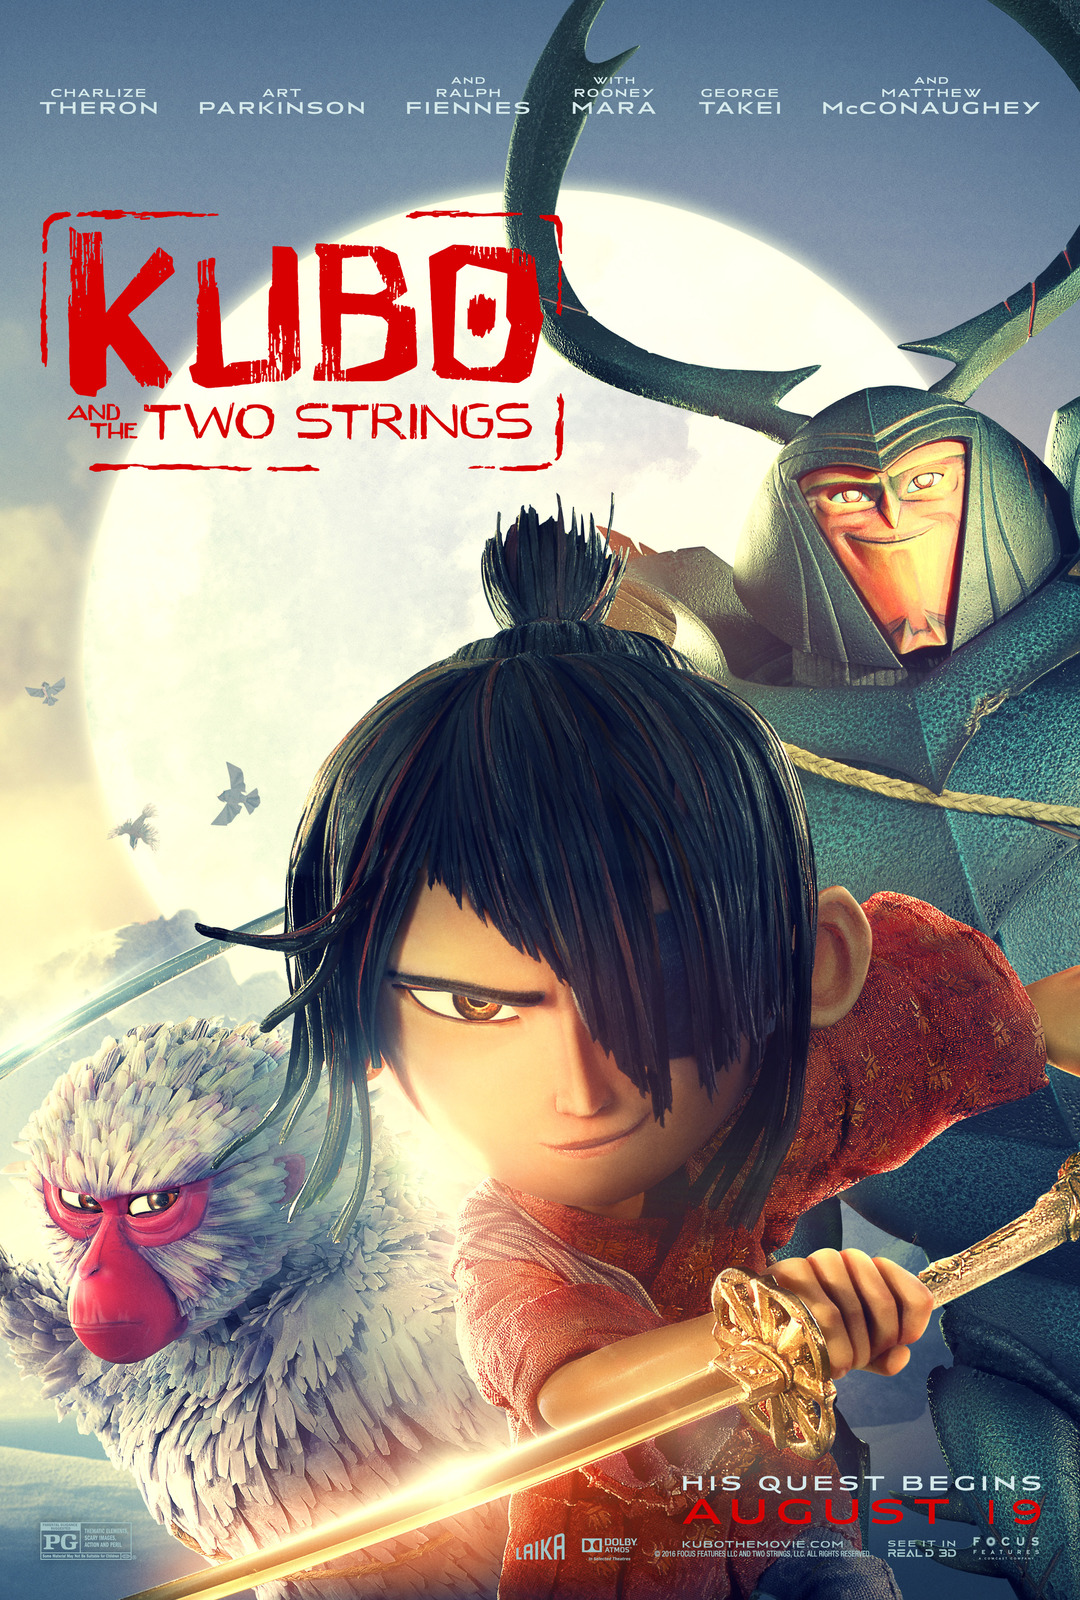 Alita: Battle Angel and Kubo and the Two Strings